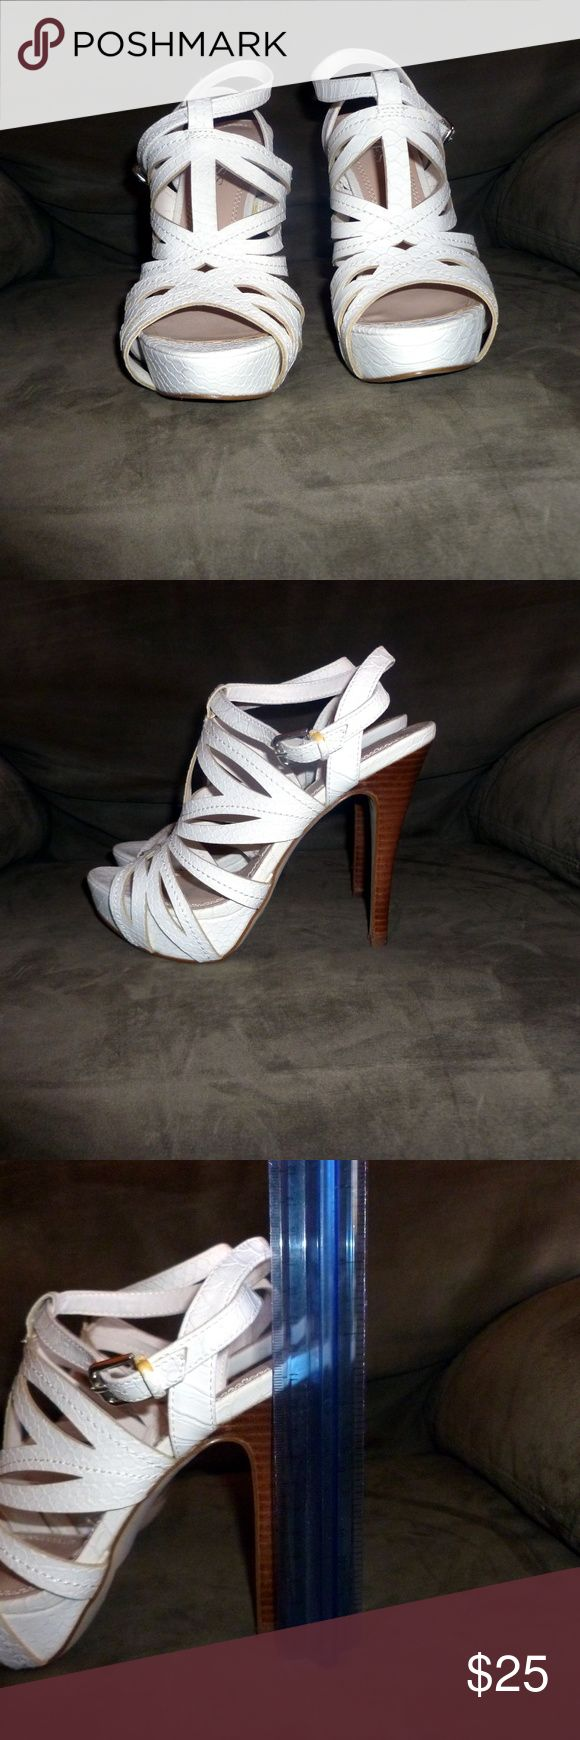 Guess shoes White Guess high heel shoes in size 6 1/2, these are faux leather and have been worn approx. twice.  These are in excellent condition.  The heel measures 3 1/2 in and the platform measures 1 in. Guess Shoes Heels